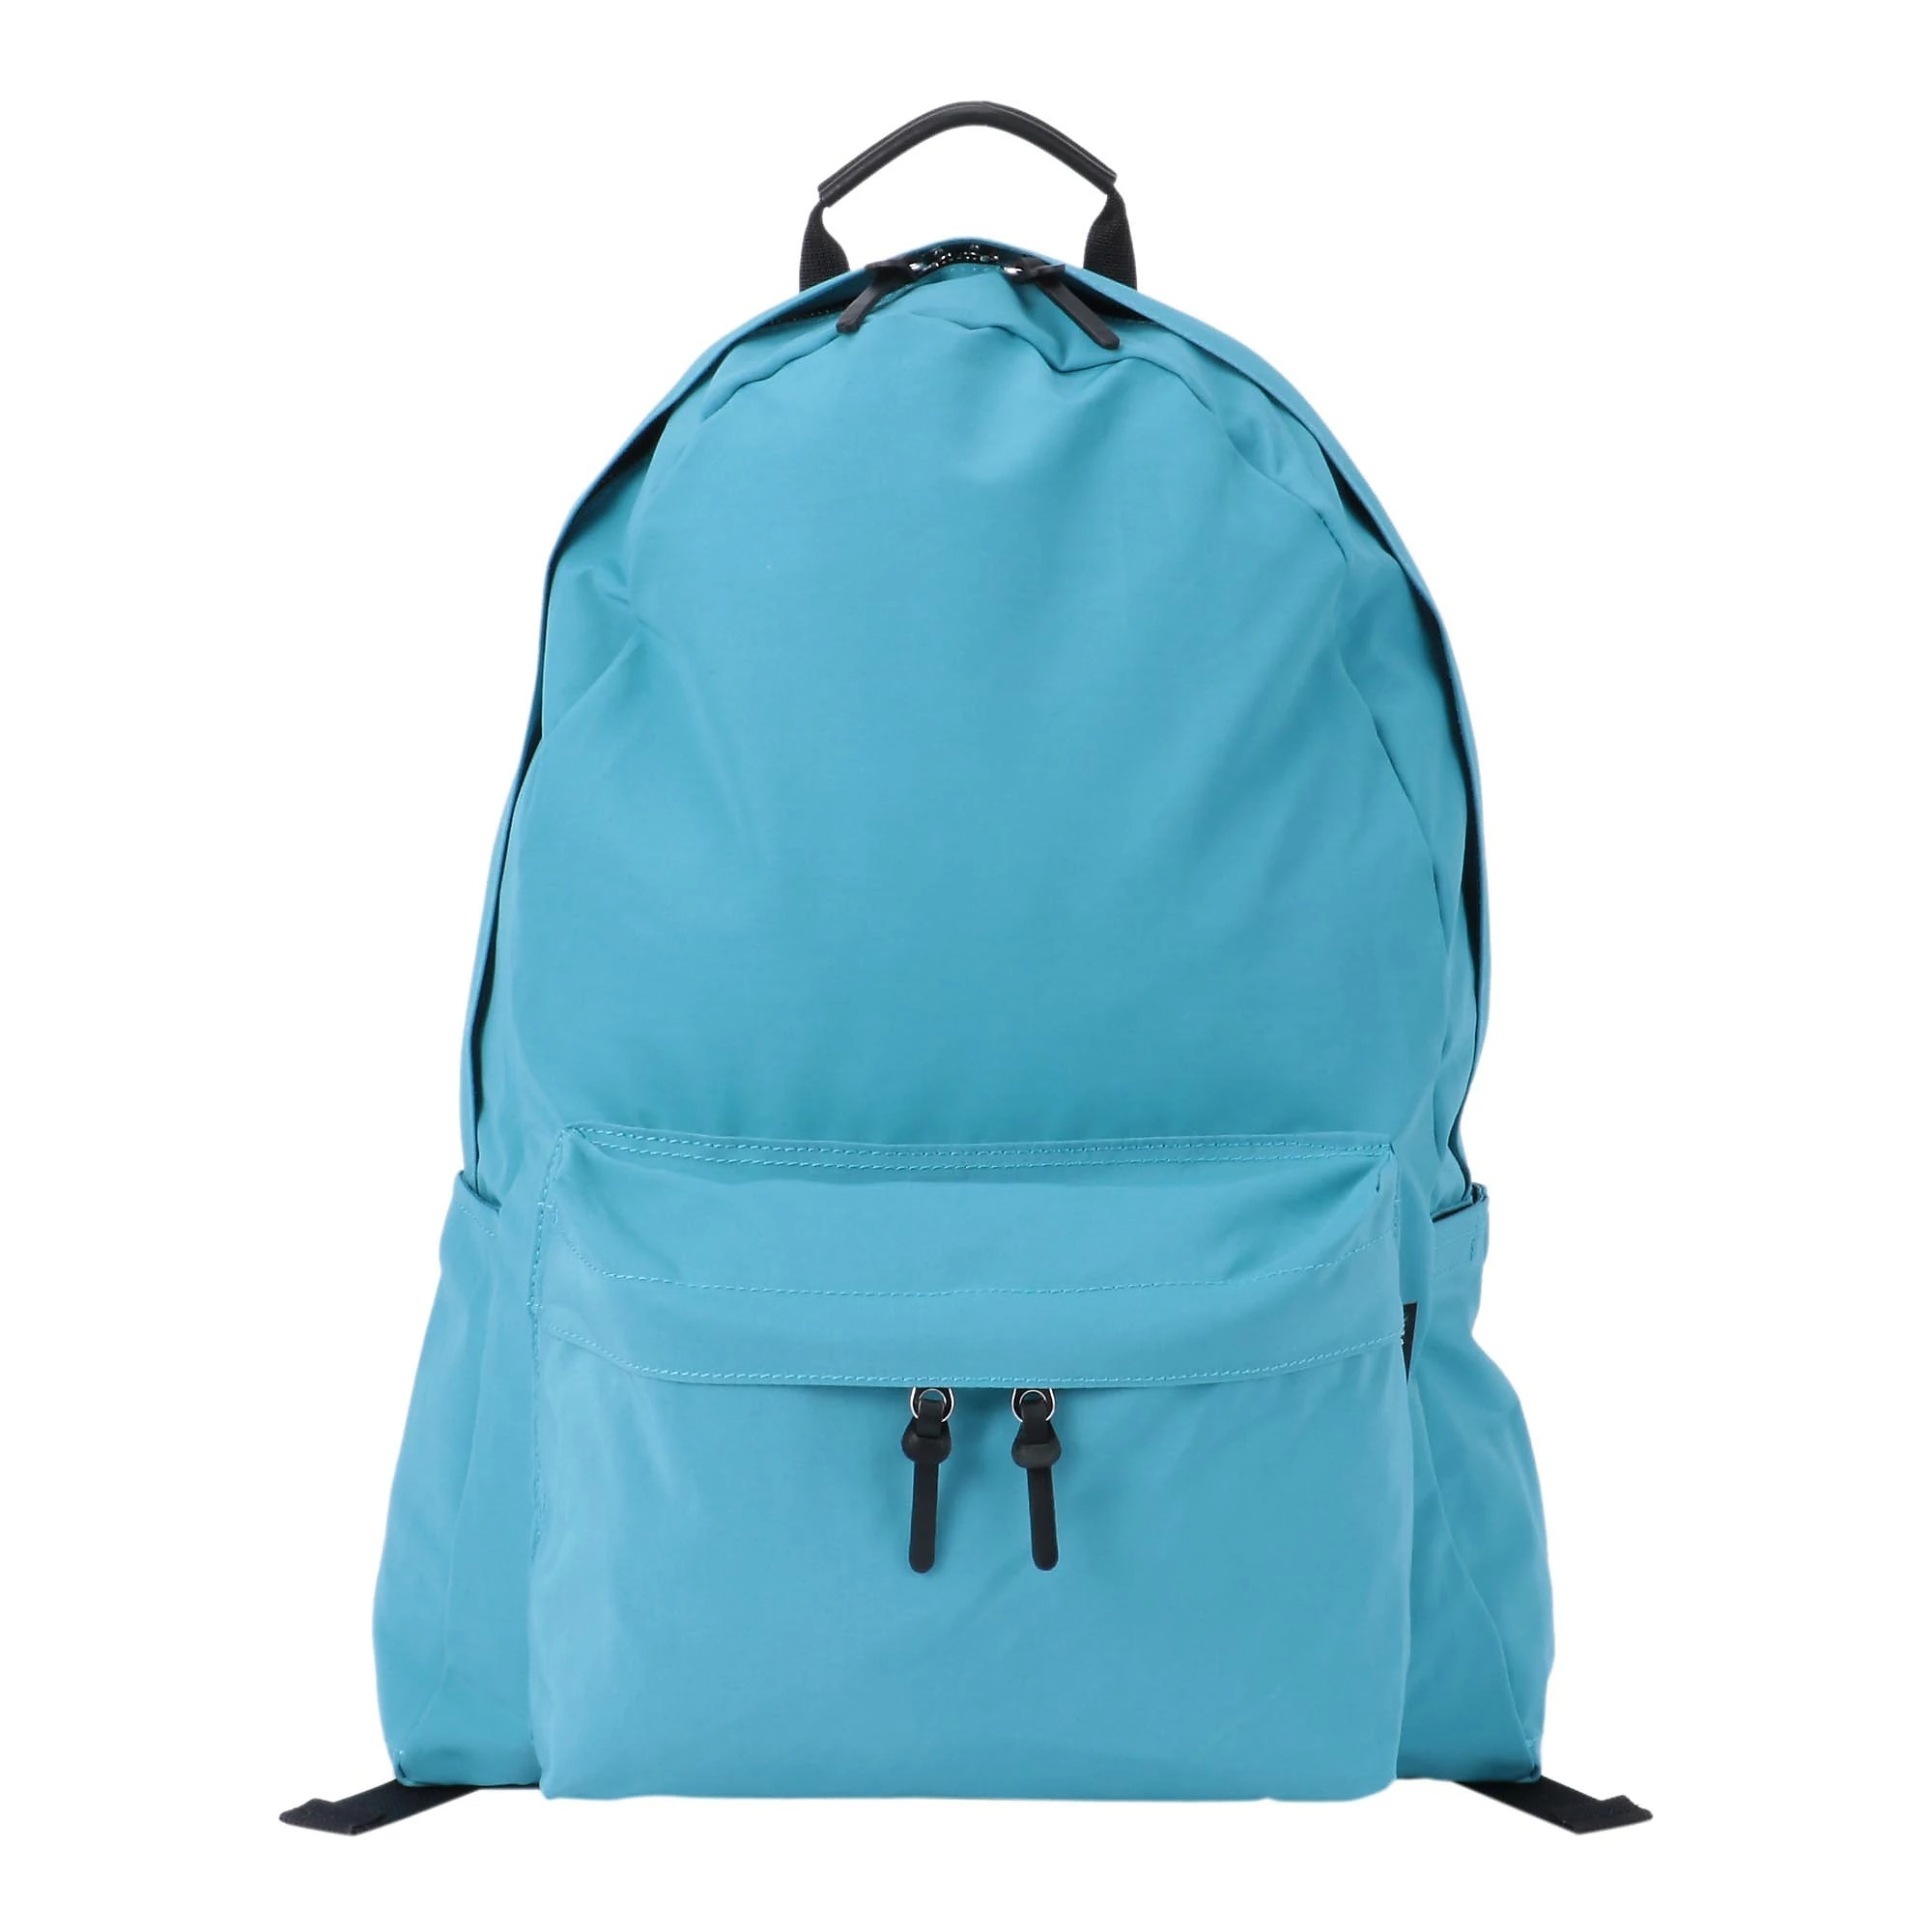 STANDARD SUPPLY DAILY DAYPACK ¥17,600